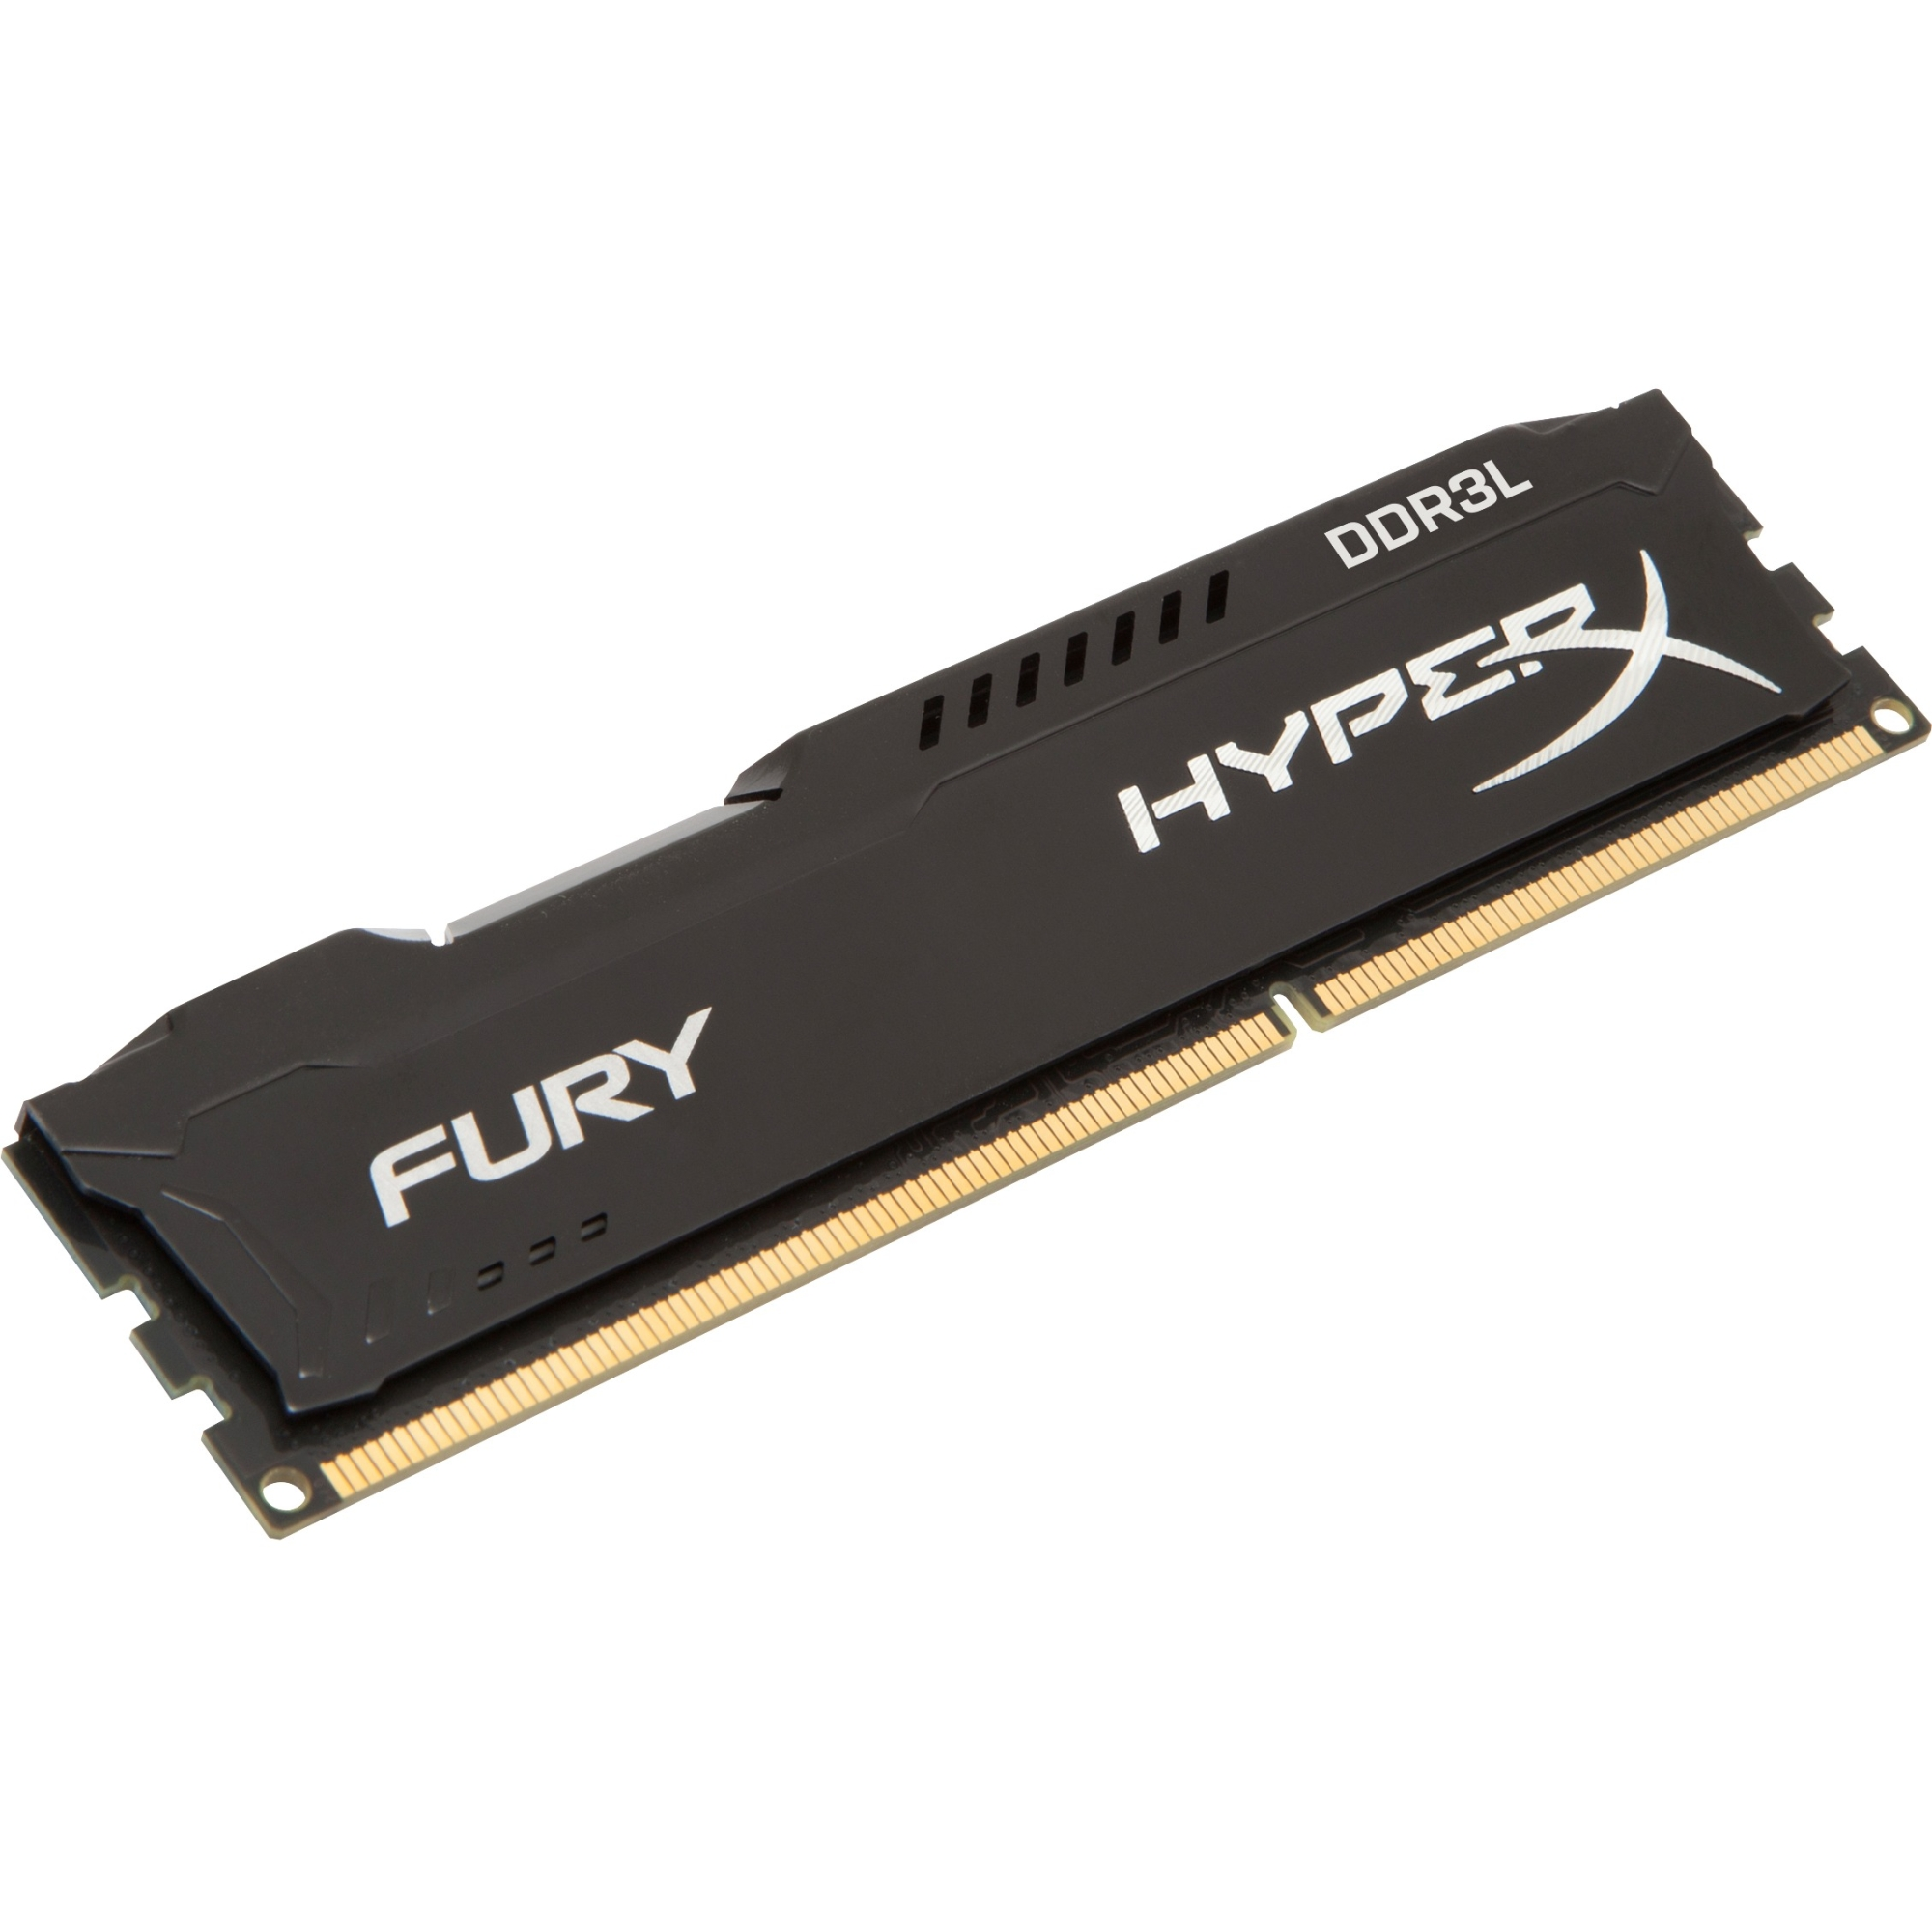 Kingston HyperX FURY Memory Low Voltage - Module - DDR3L 1866MHz - 4 GB (1 x 4 GB) - DDR3L SDRAM - 1866 MHz - 1.35 V -